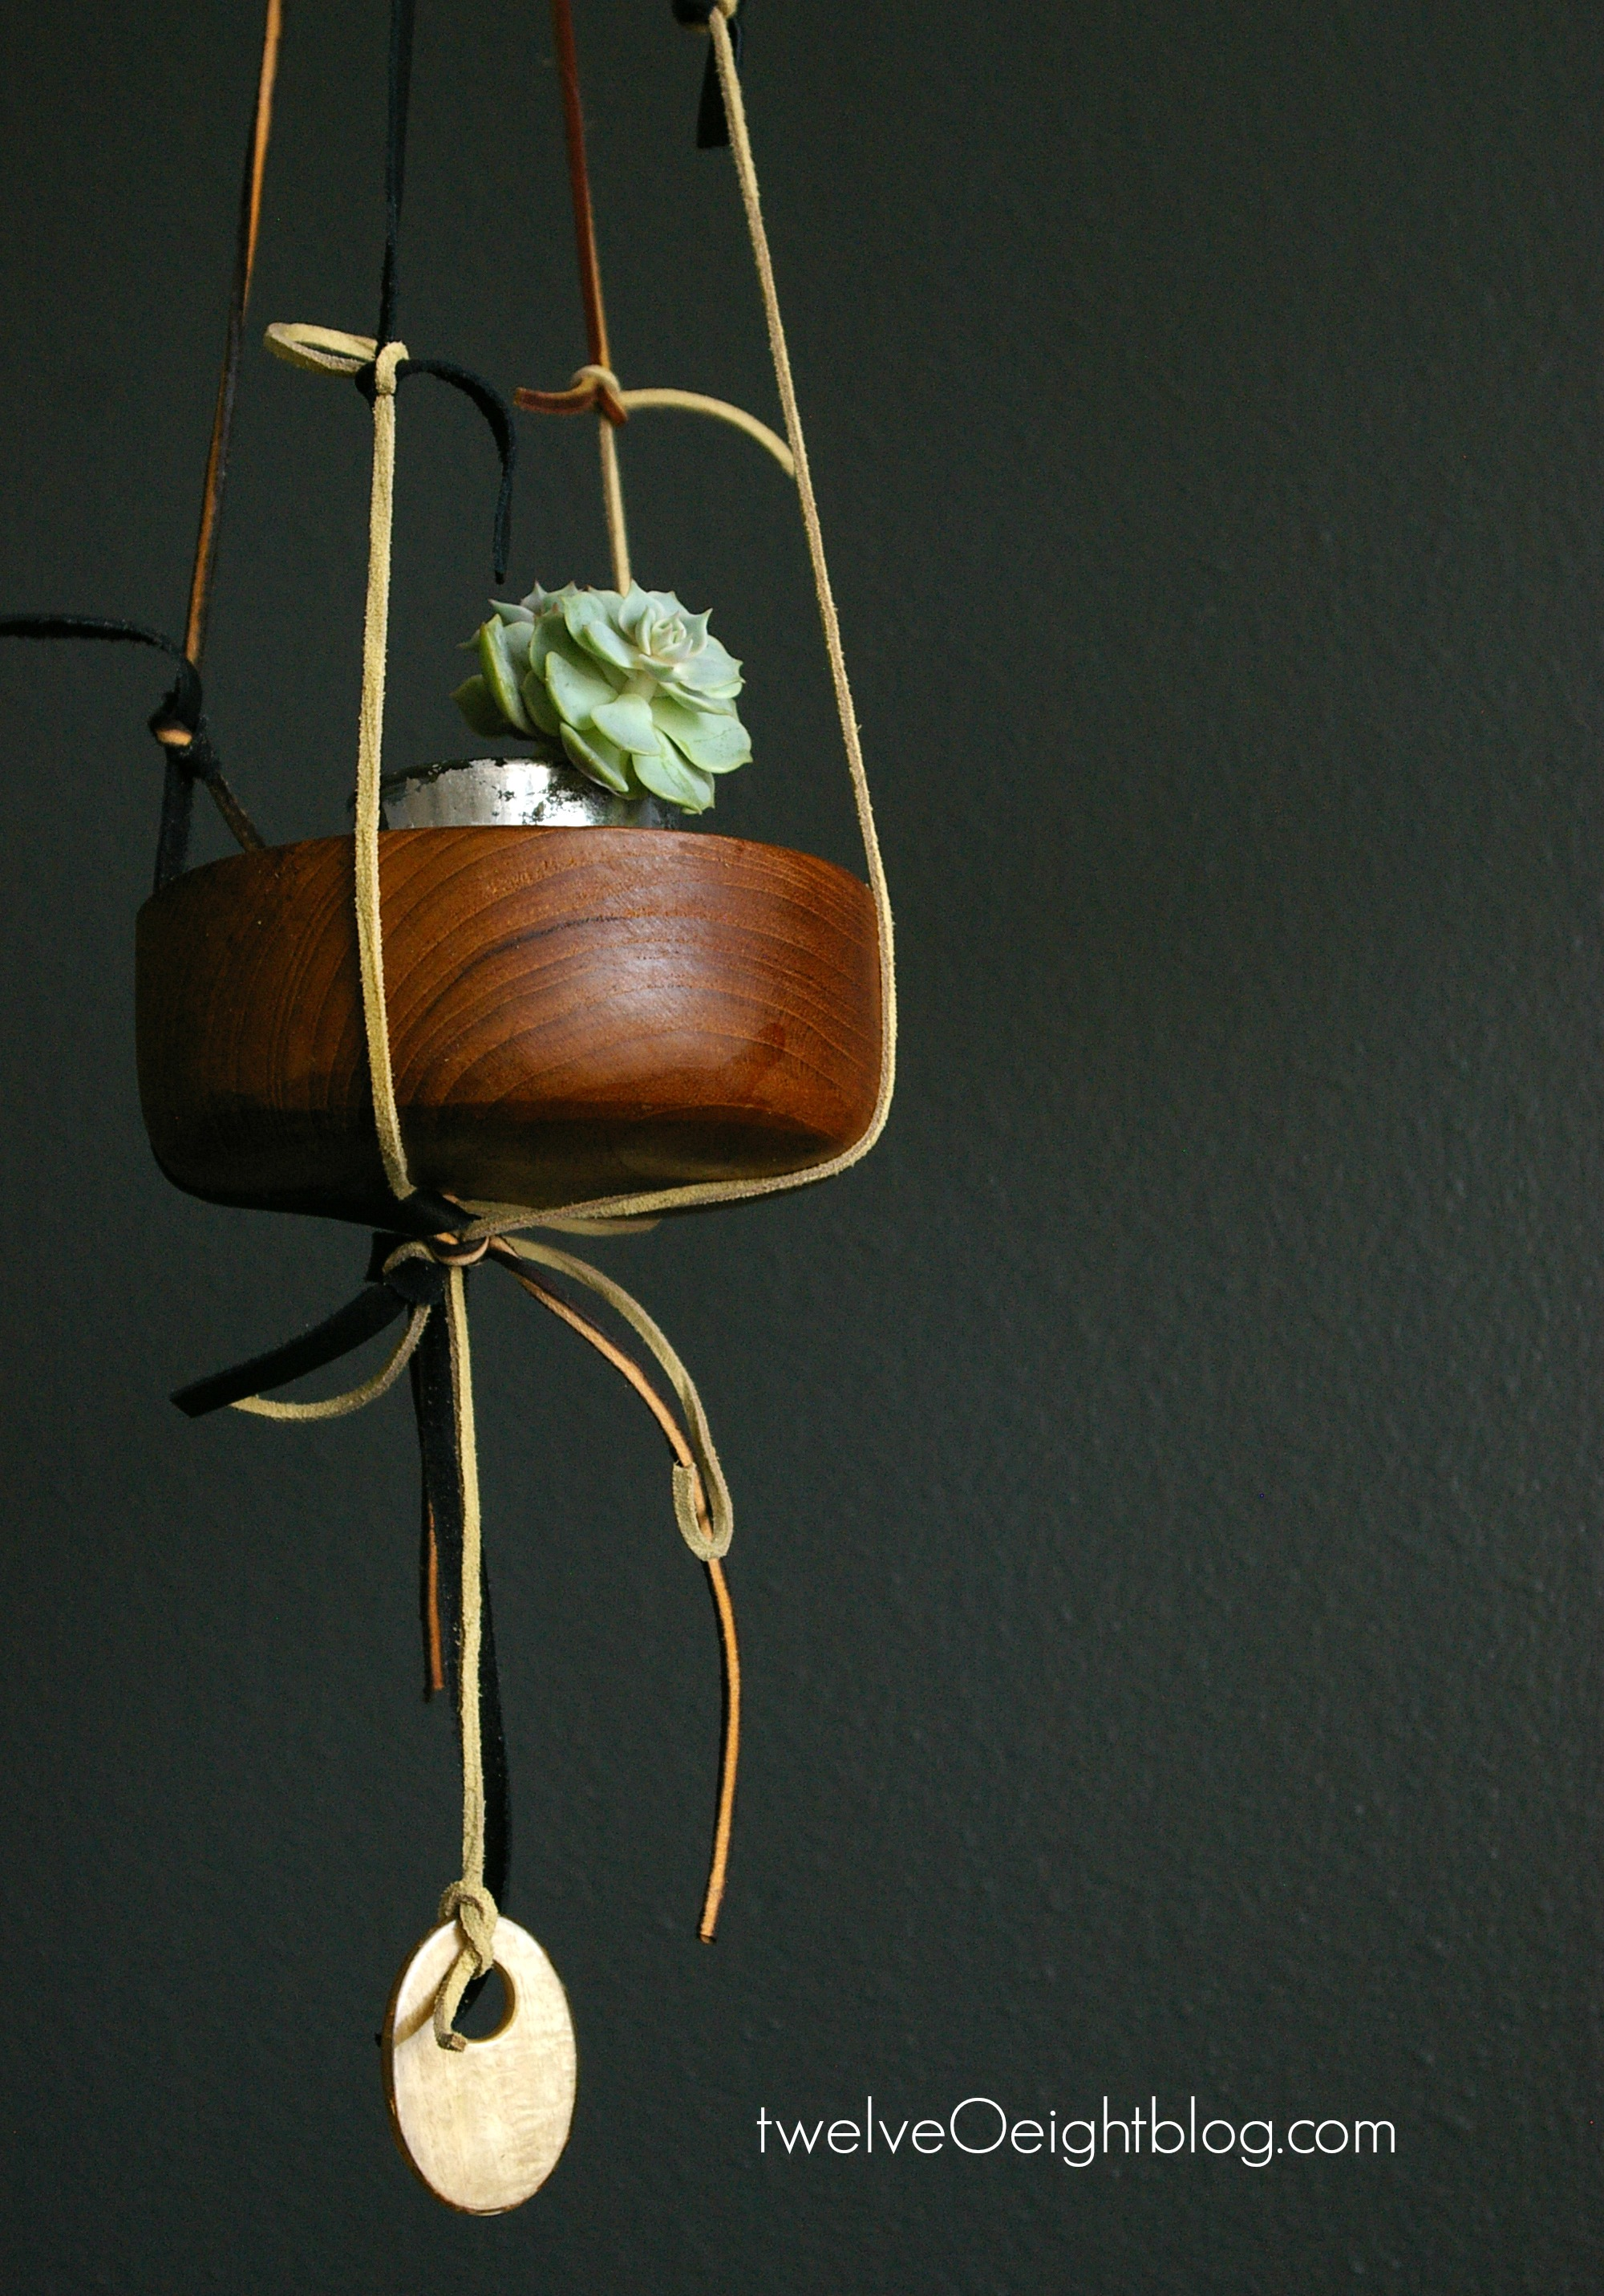 diy knotted leather hanging planter twelveoeight